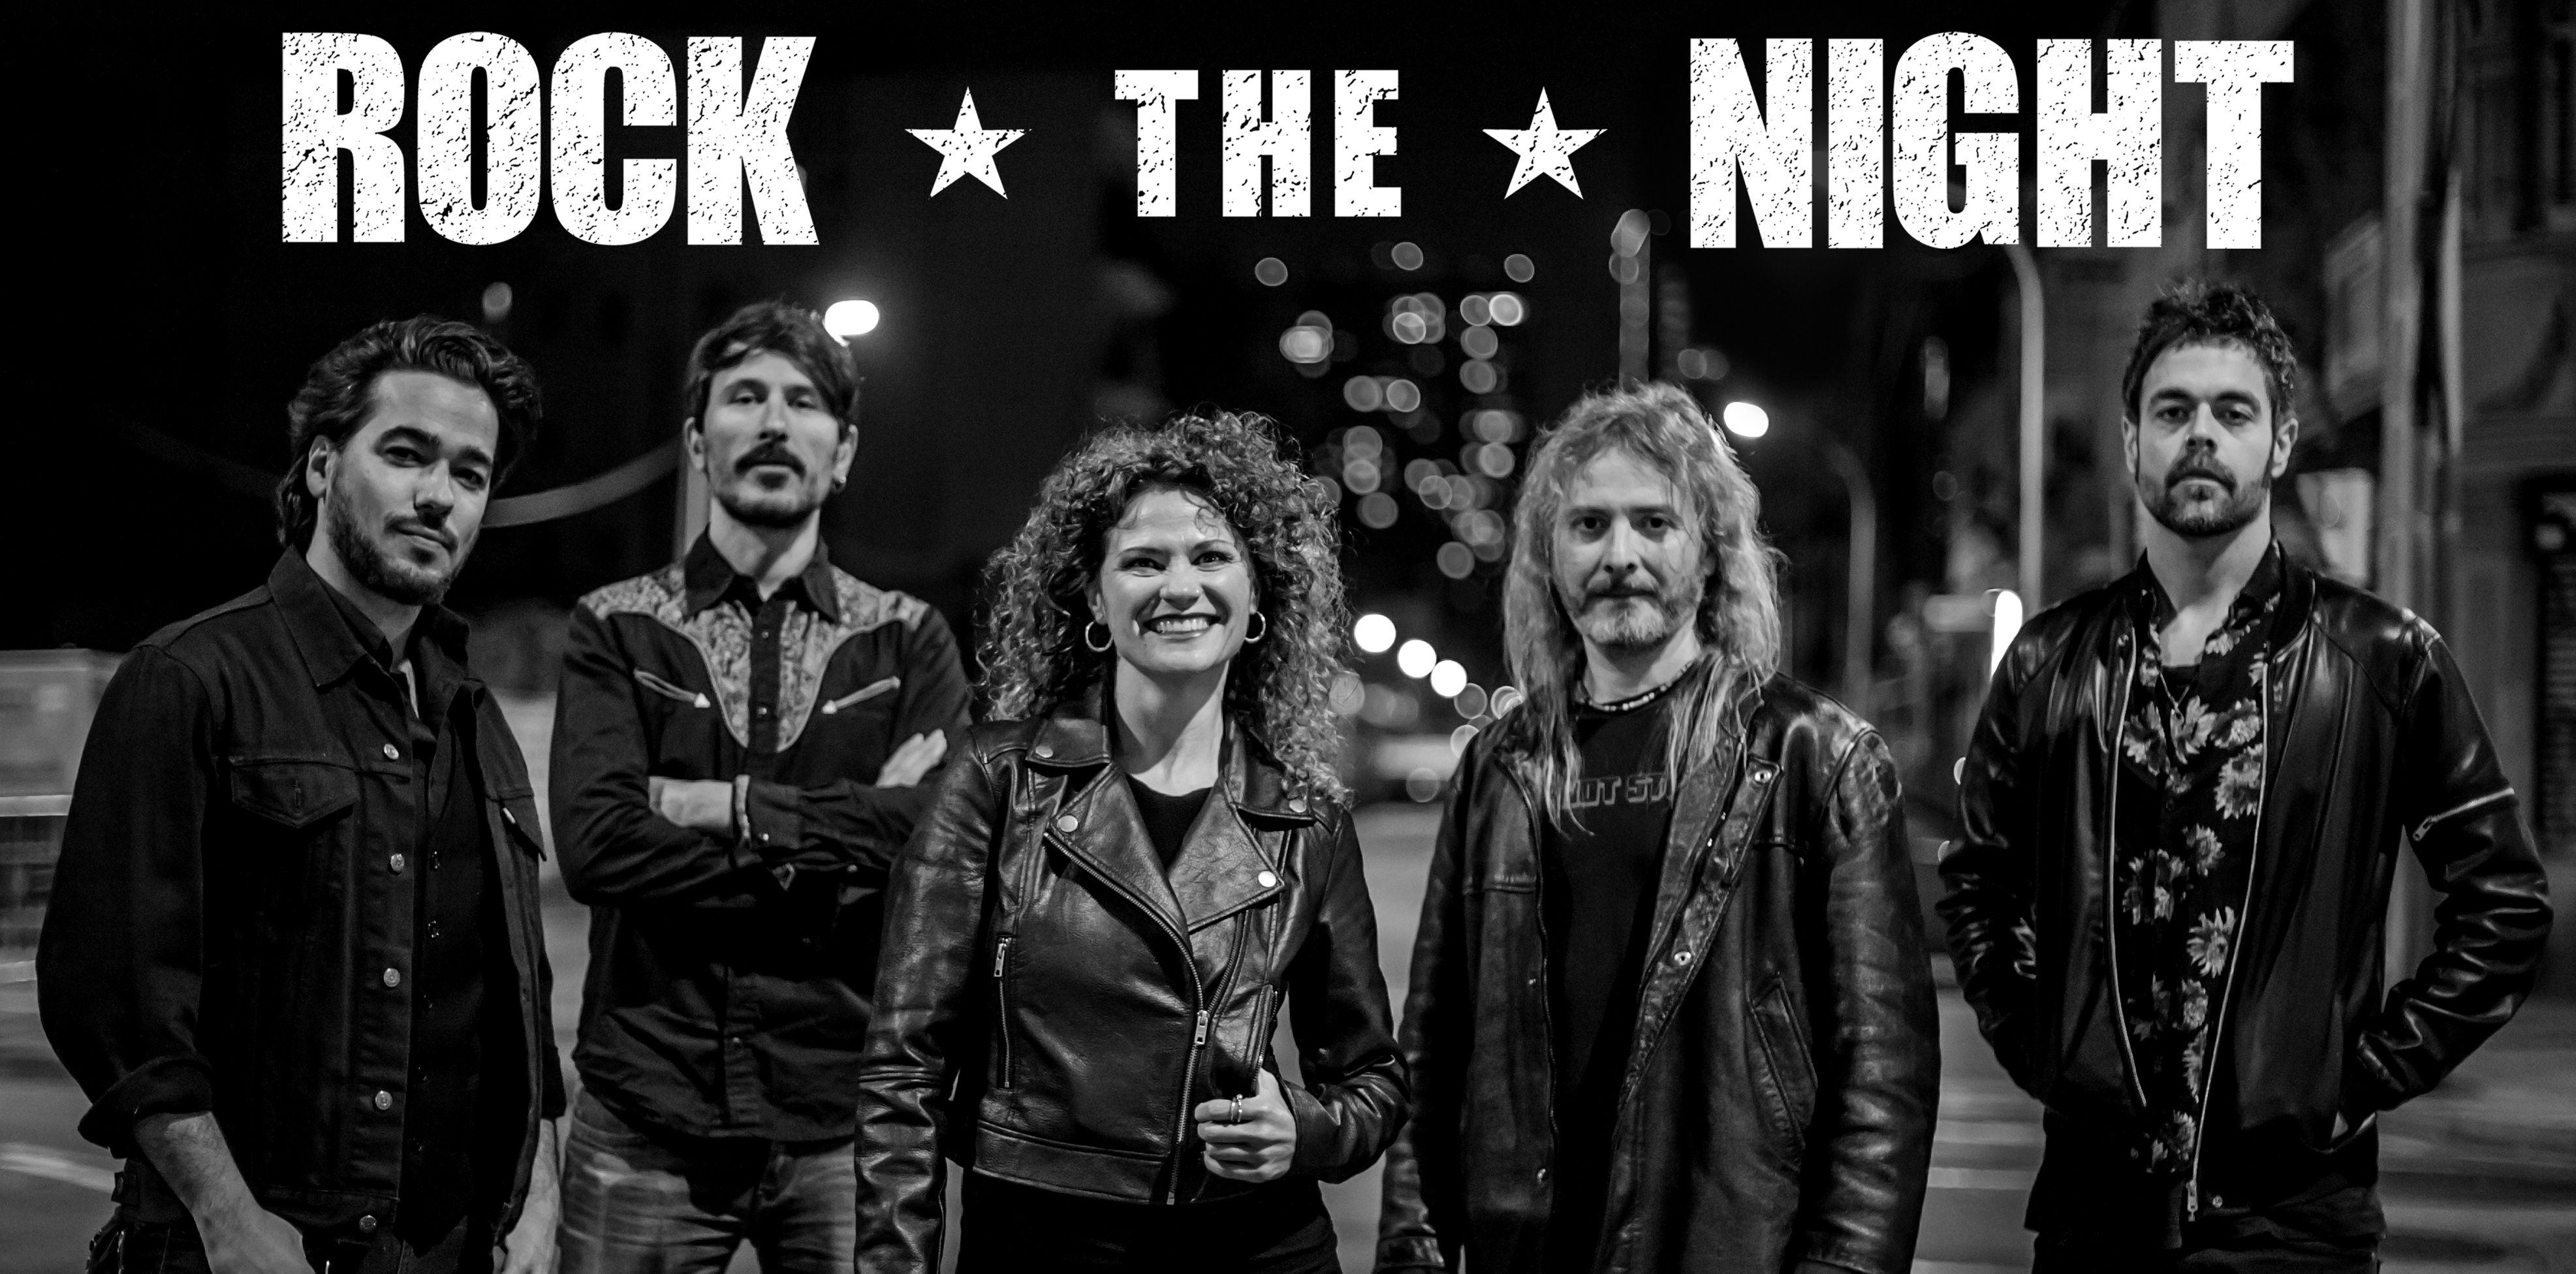 ROCK THE NIGHT